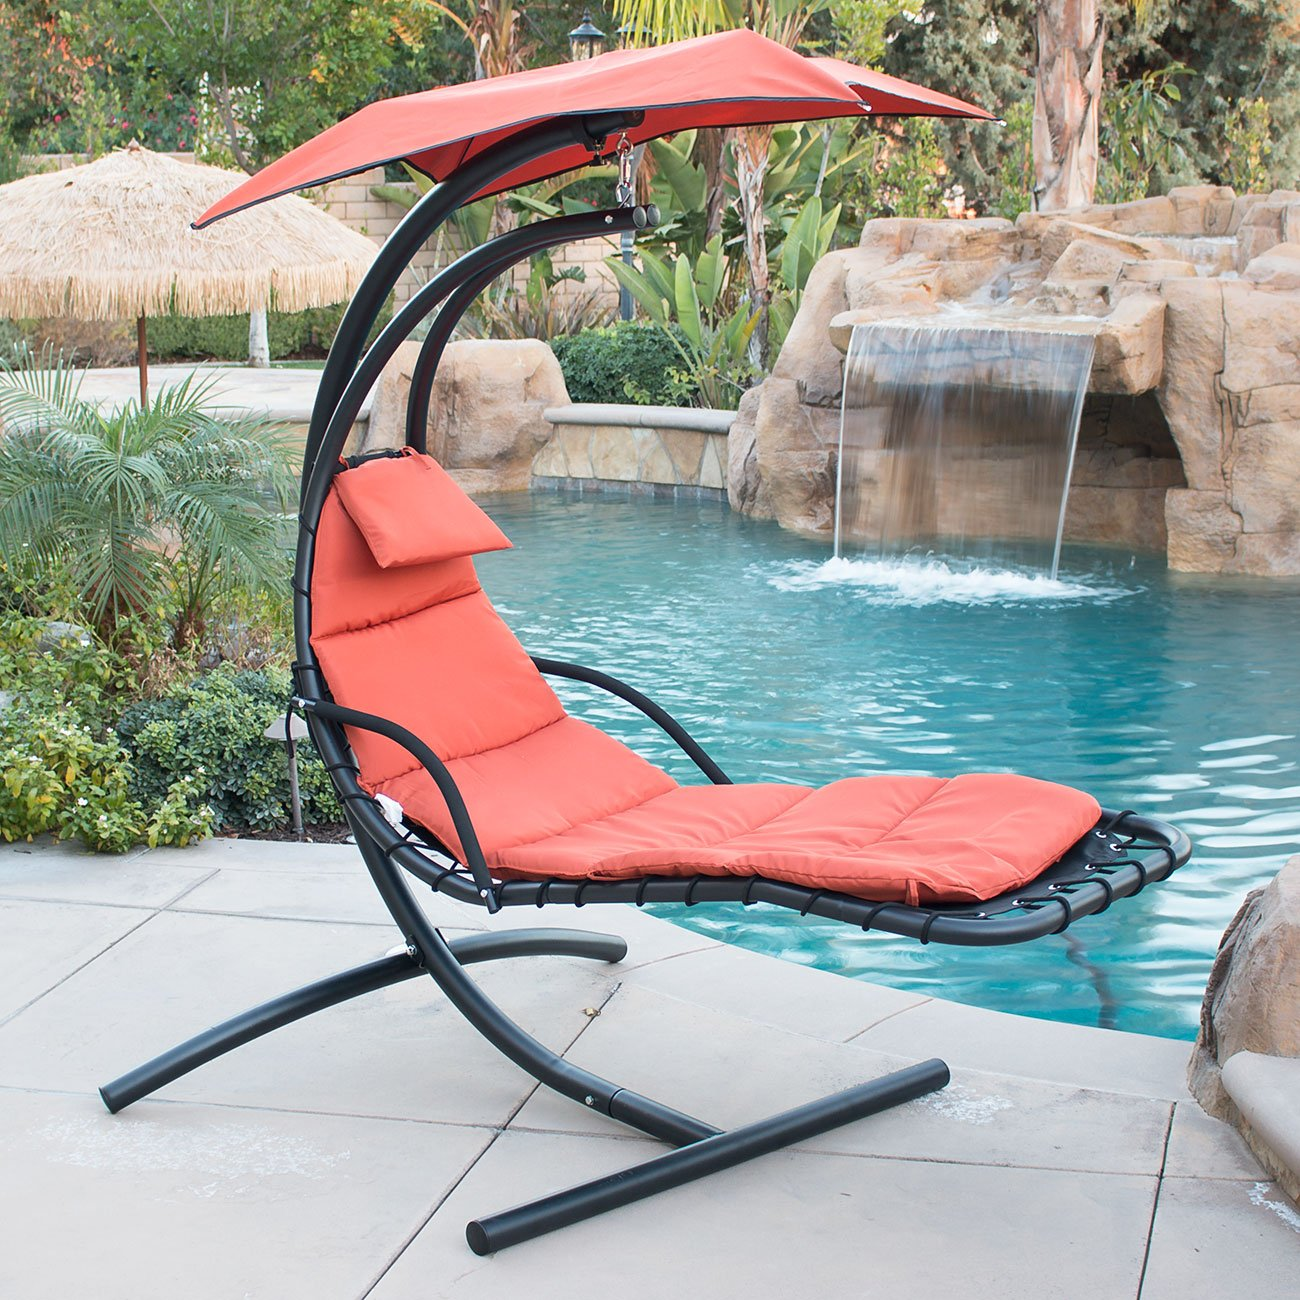 Top 10 Best Hanging Chaise Loungers